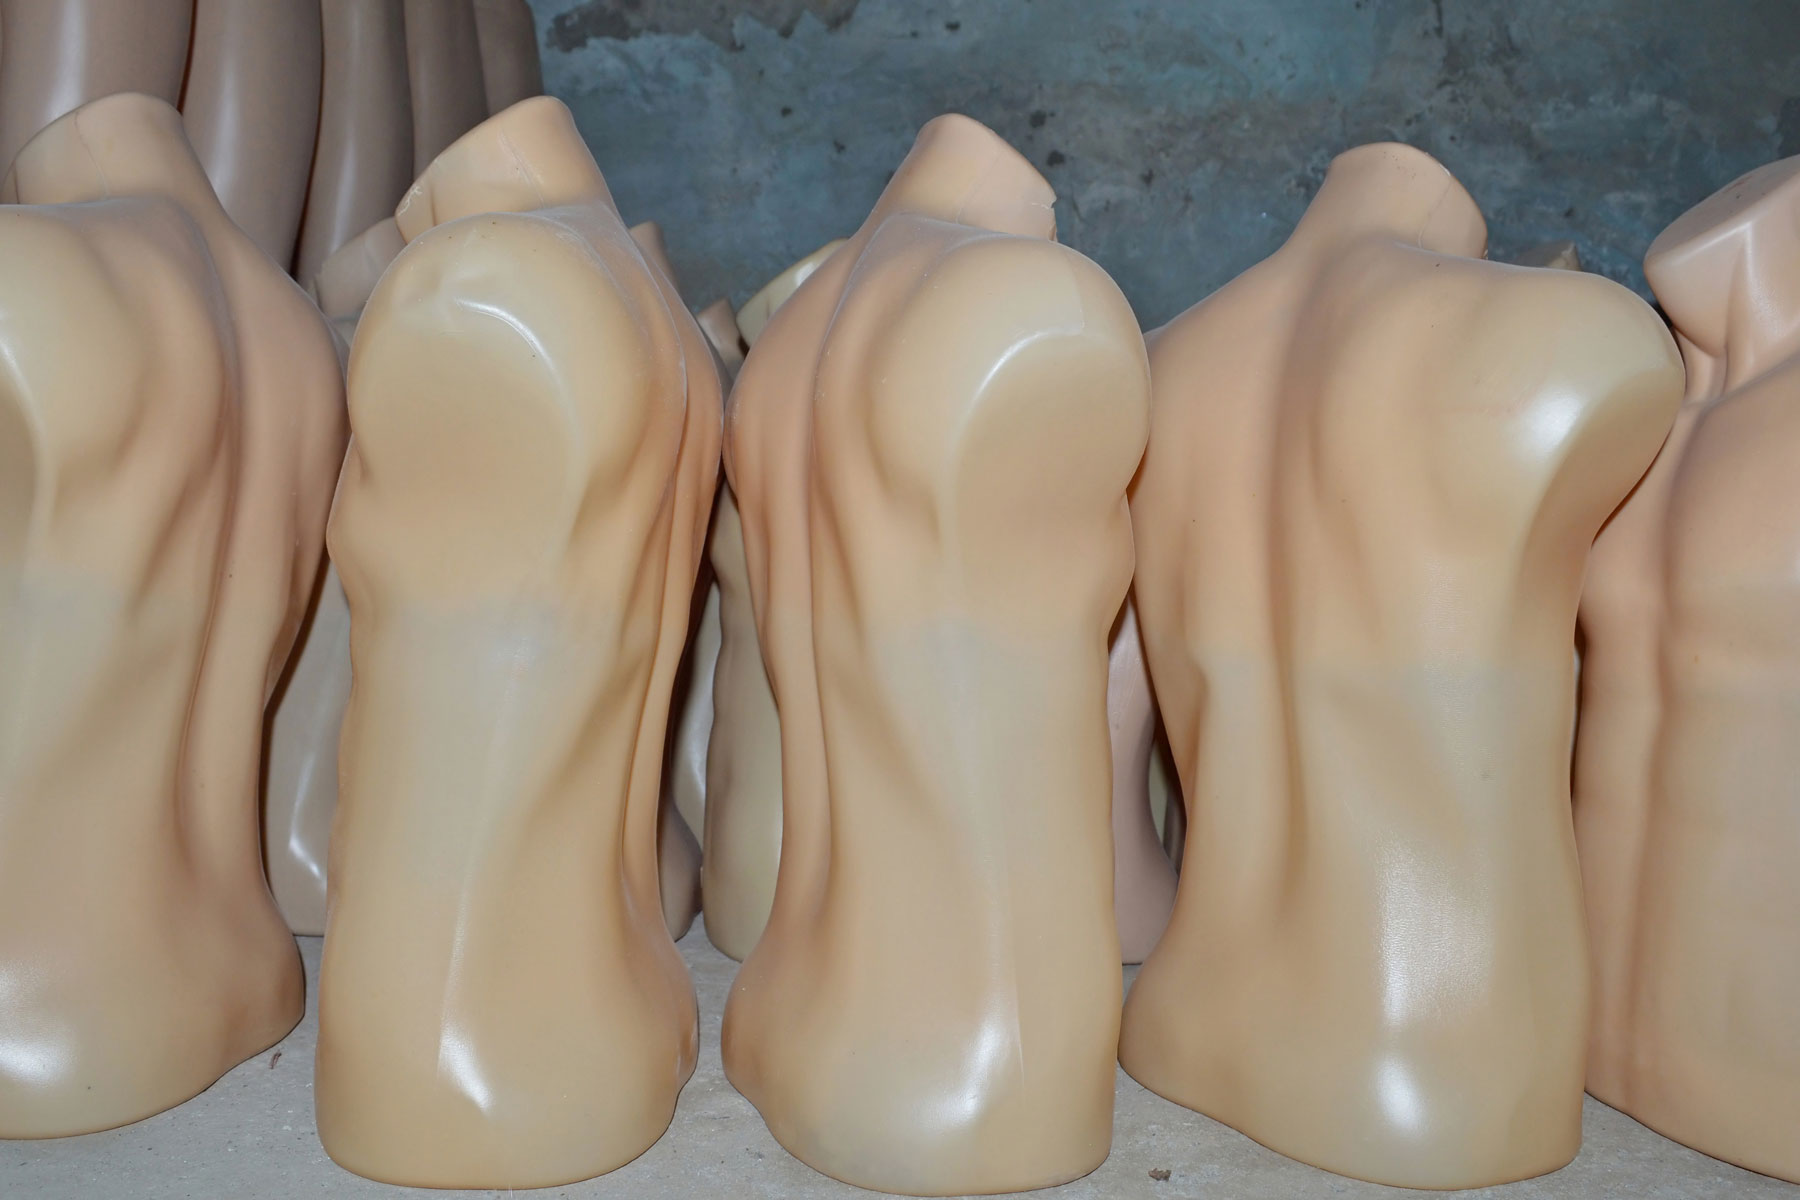 torsos found in untaxed vehicle